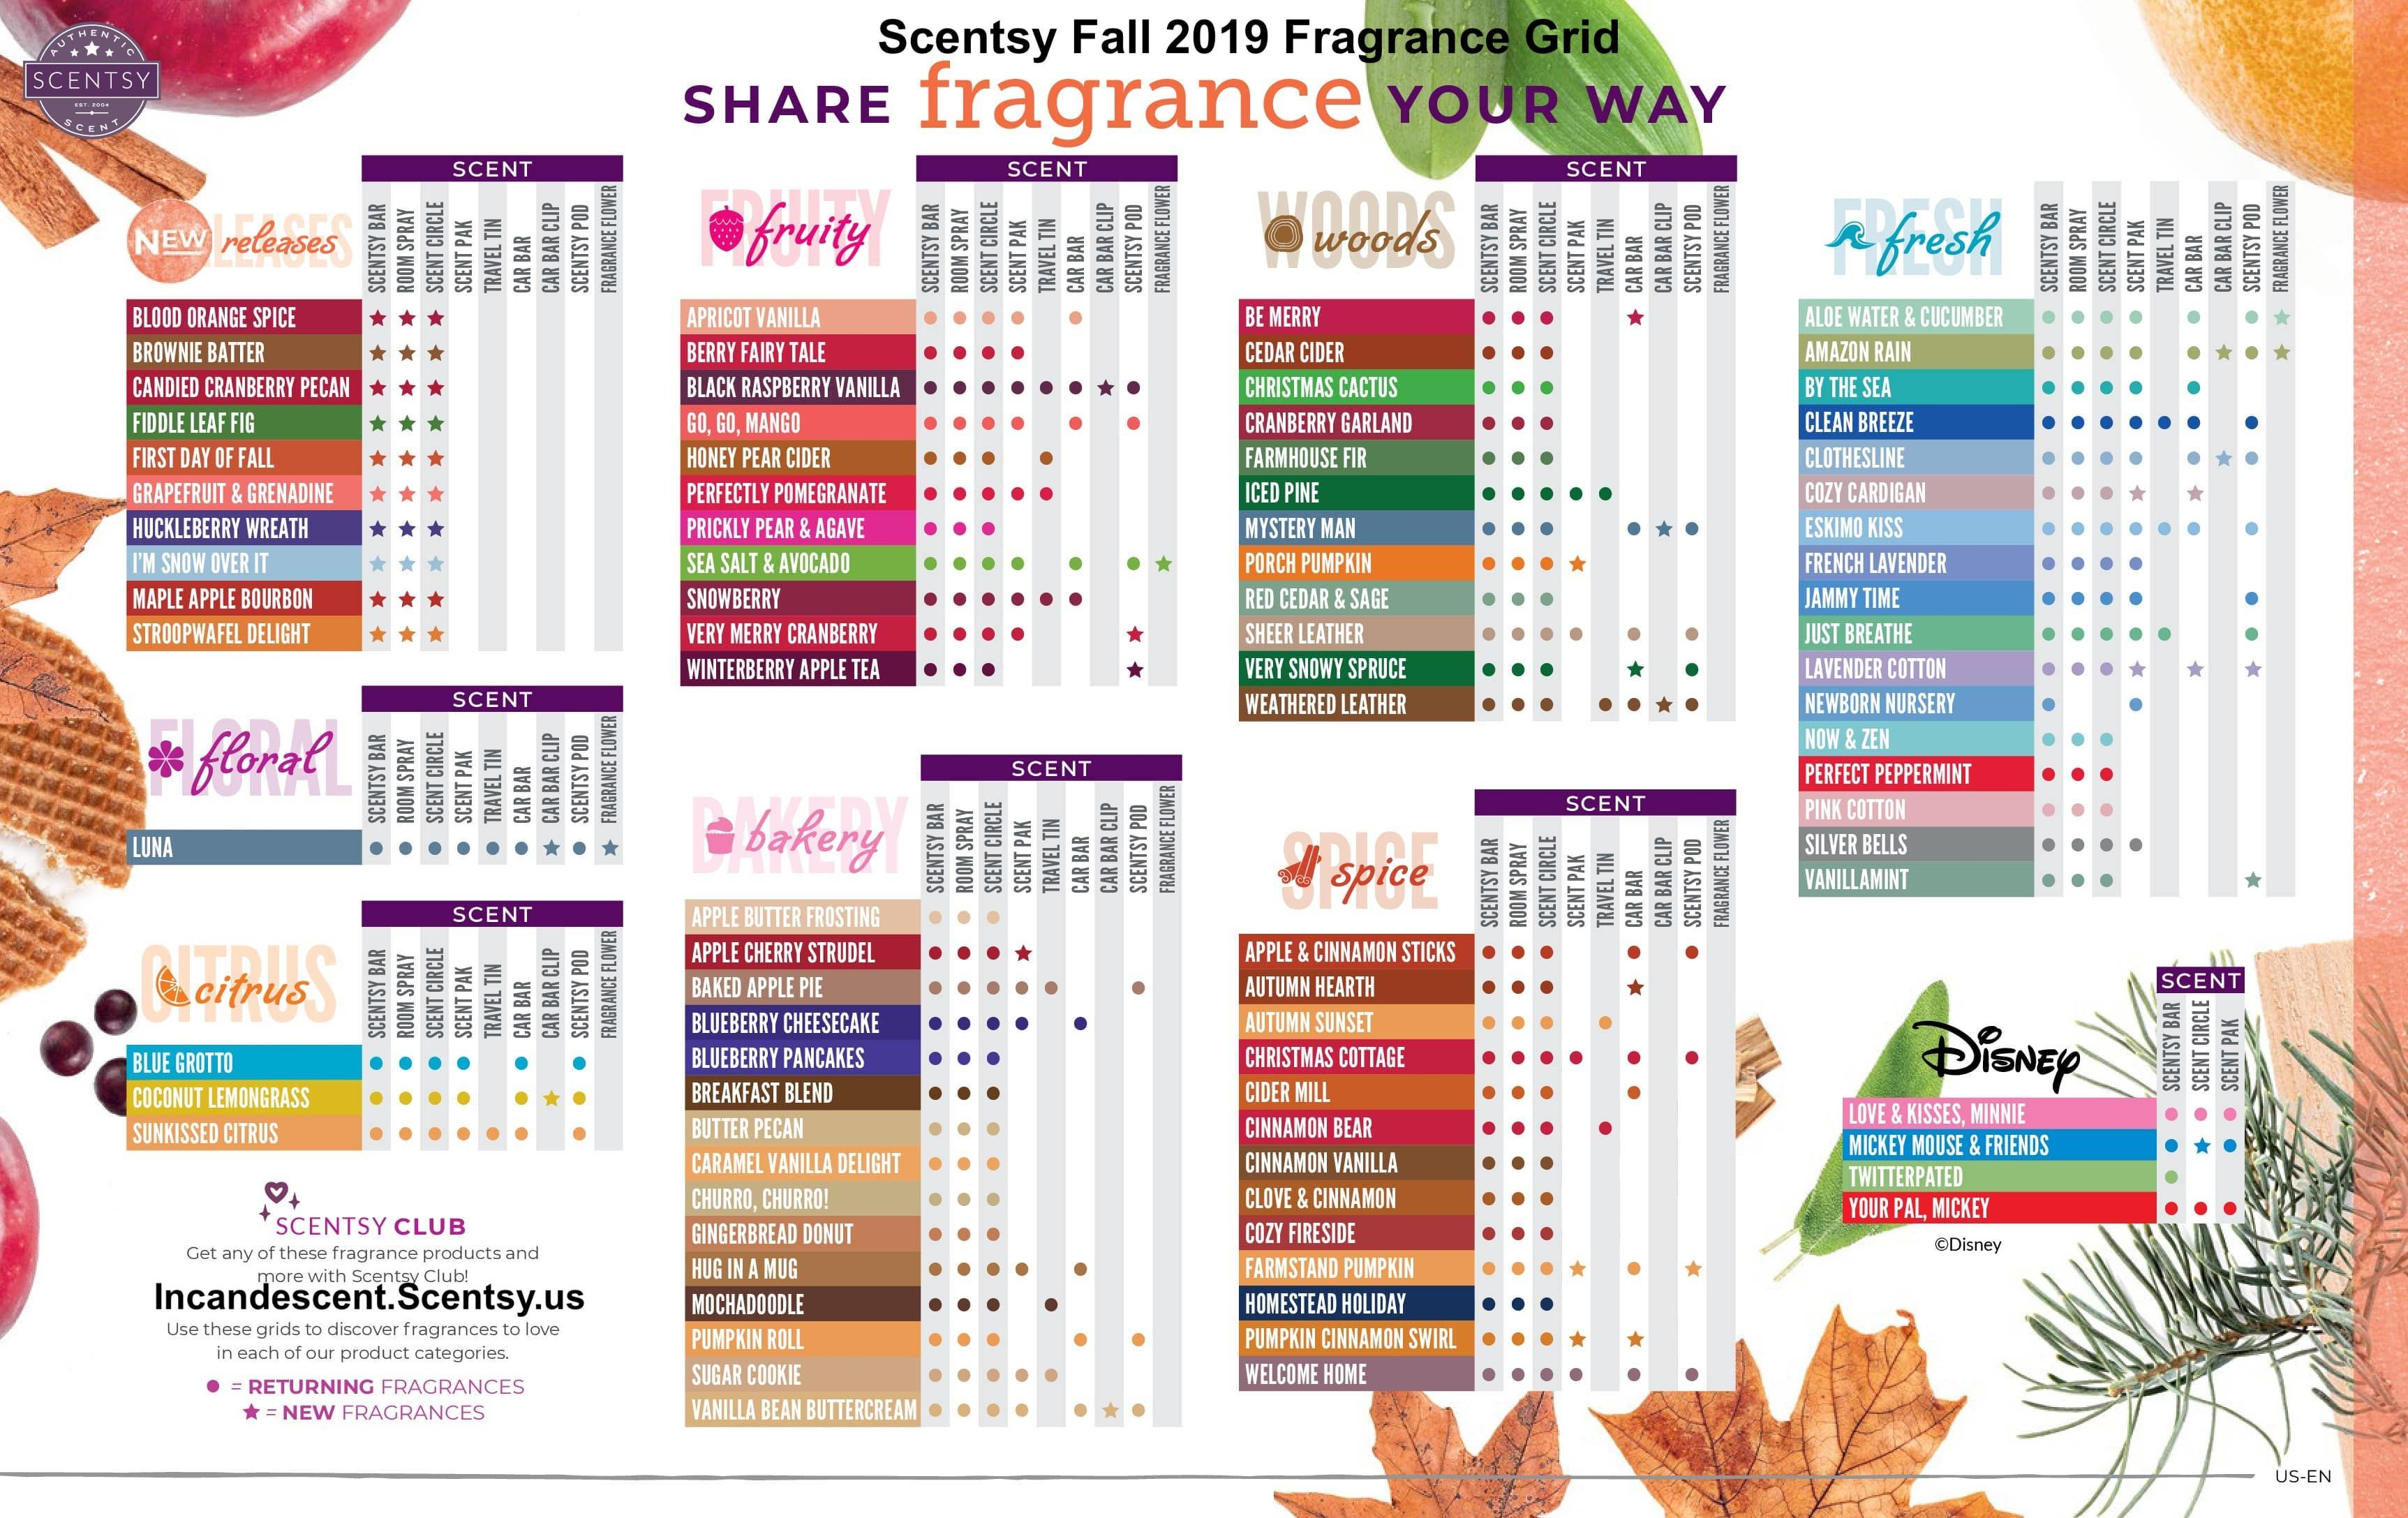 SCENTSY FALL WINTER 2019 2020 COMPLETE SCENT LIST